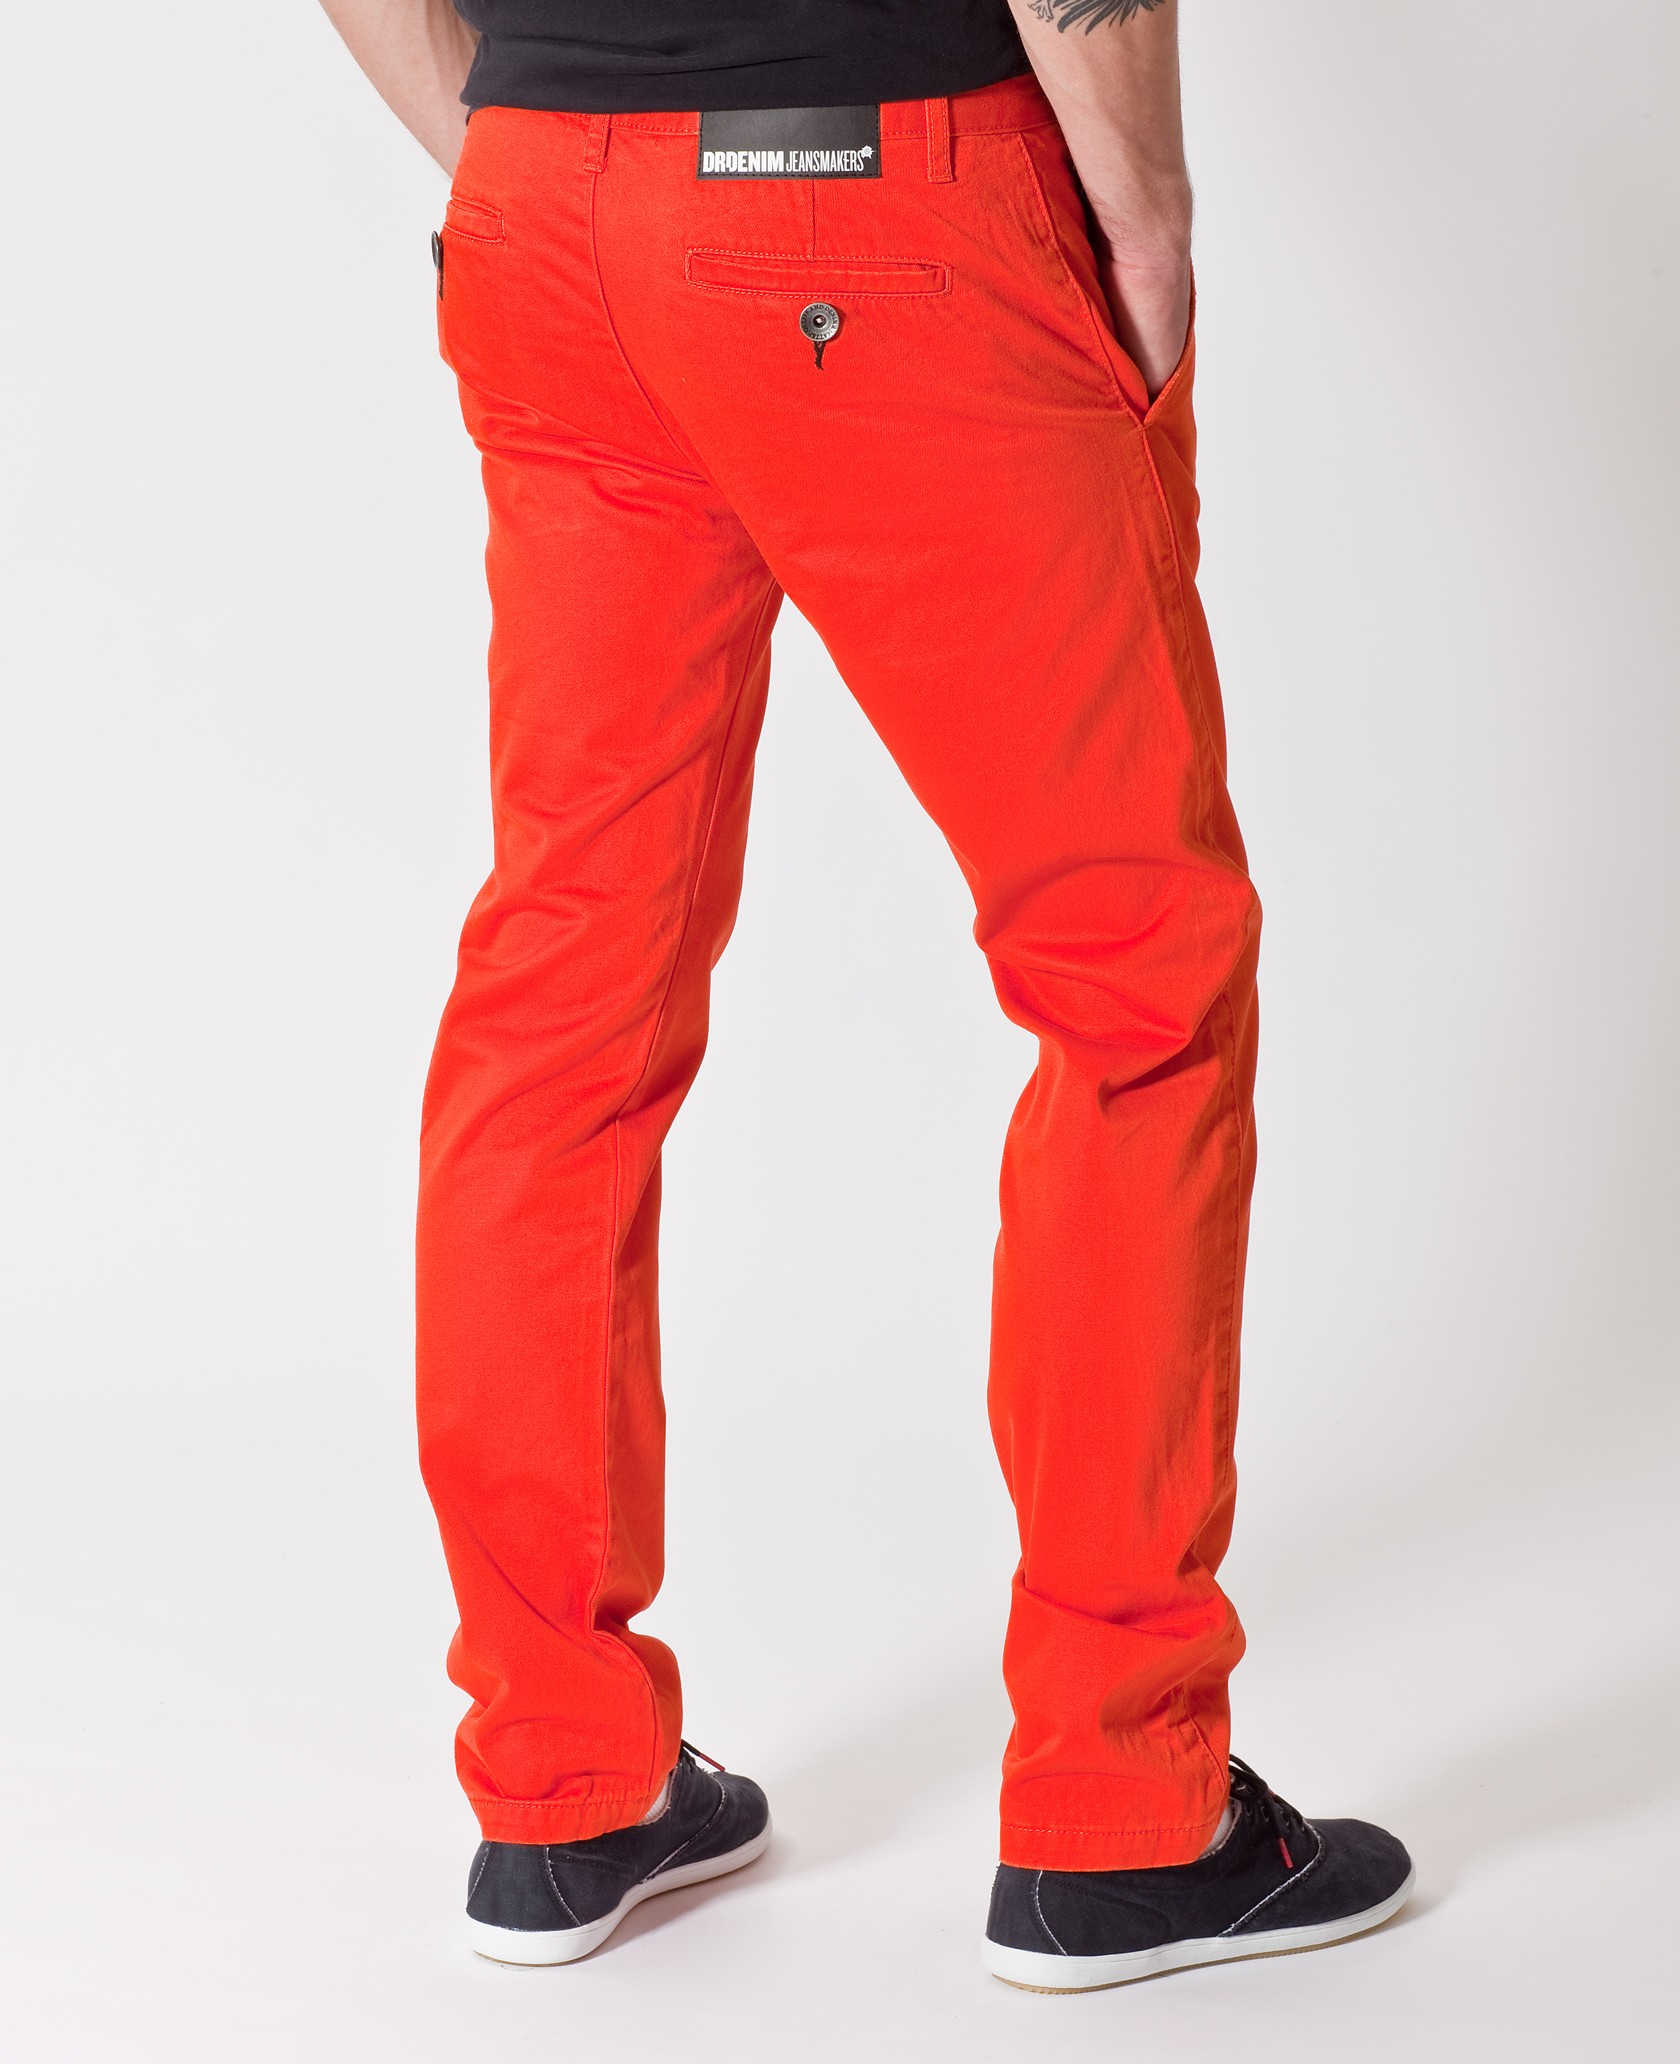 Jeans rouge homme - Jean mode homme ...